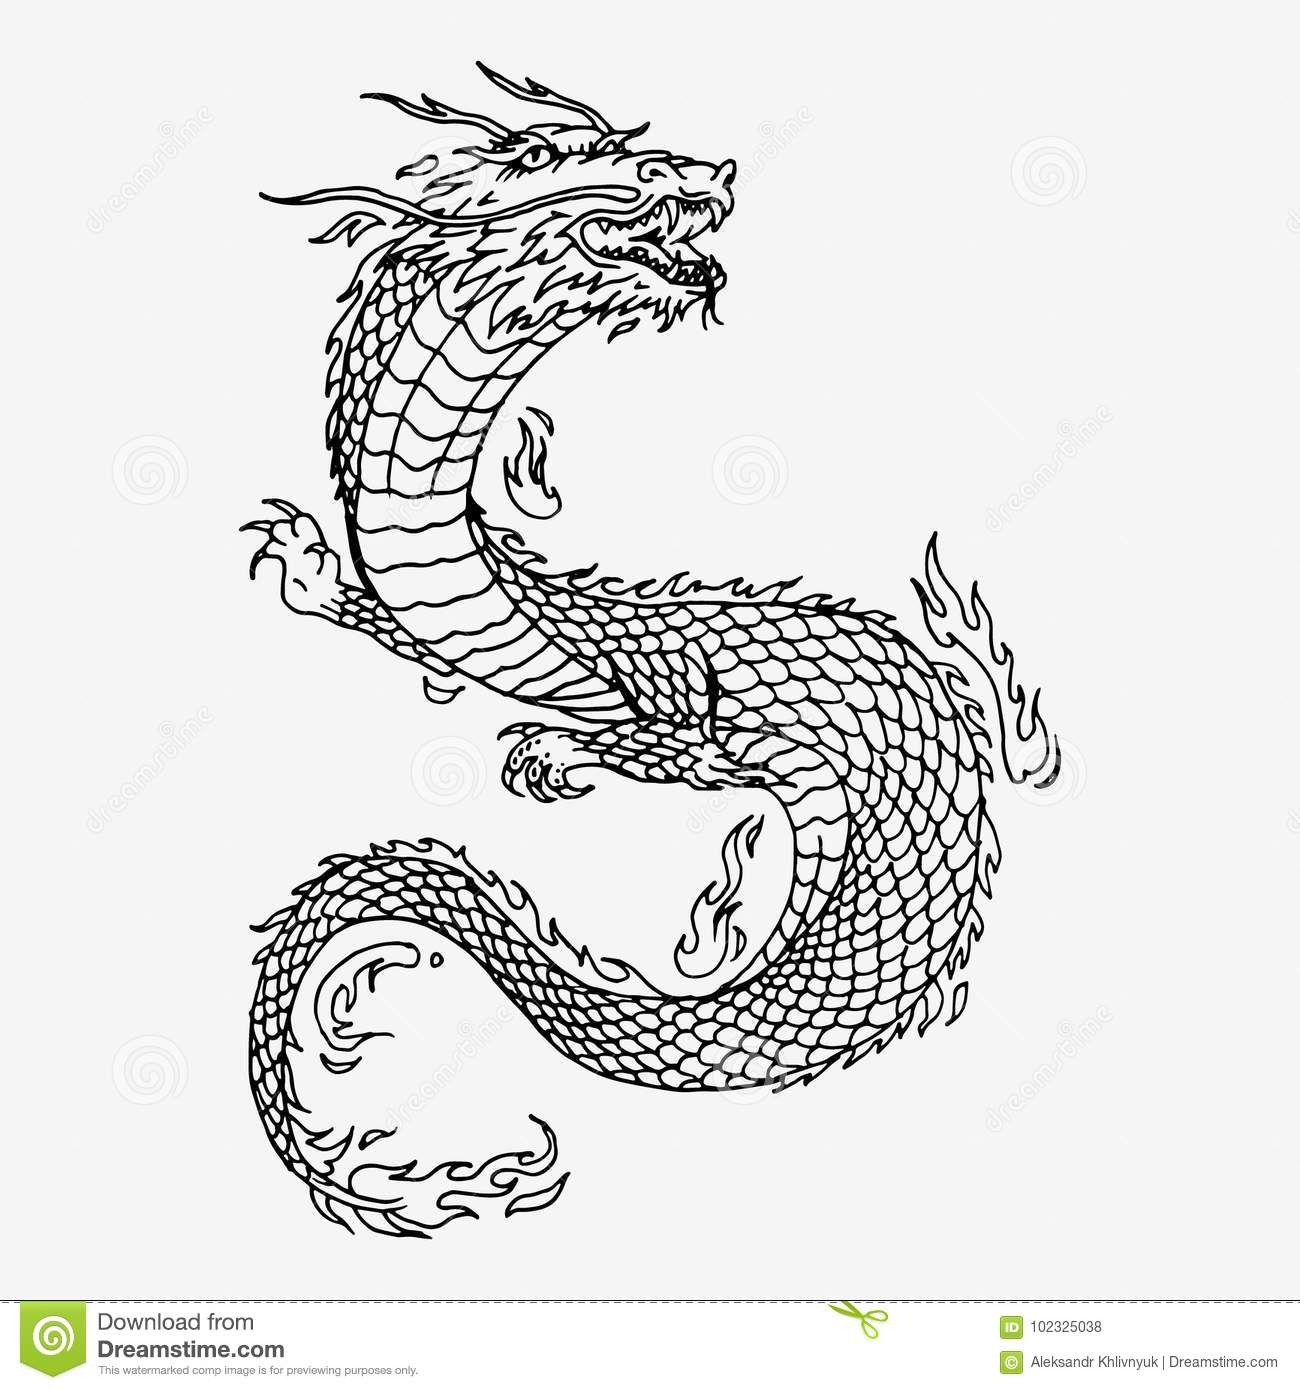 Chinese Dragon Hand Drawn Stock Illustration Illustration Of Drawn 102325038